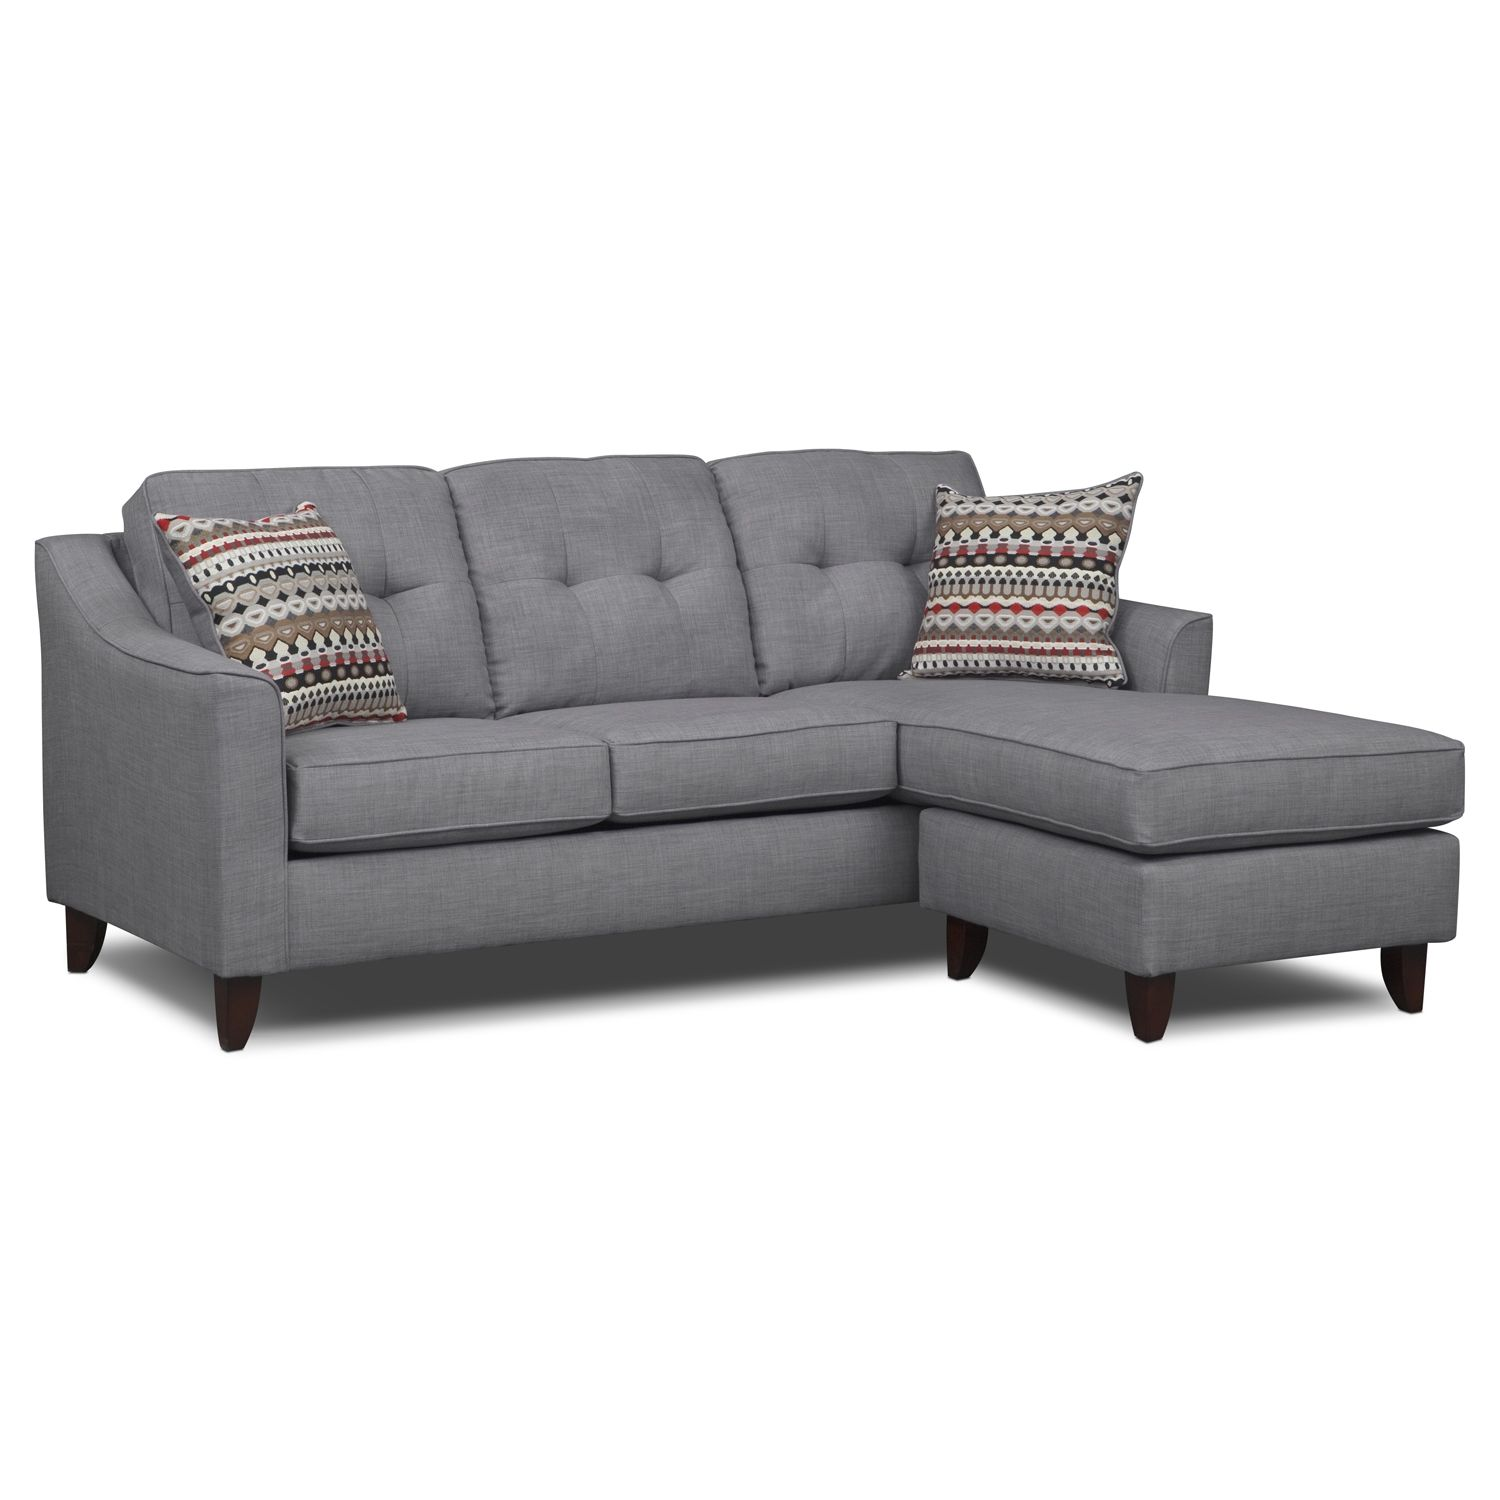 Living Room Furniture Pearson Chaise Sofa